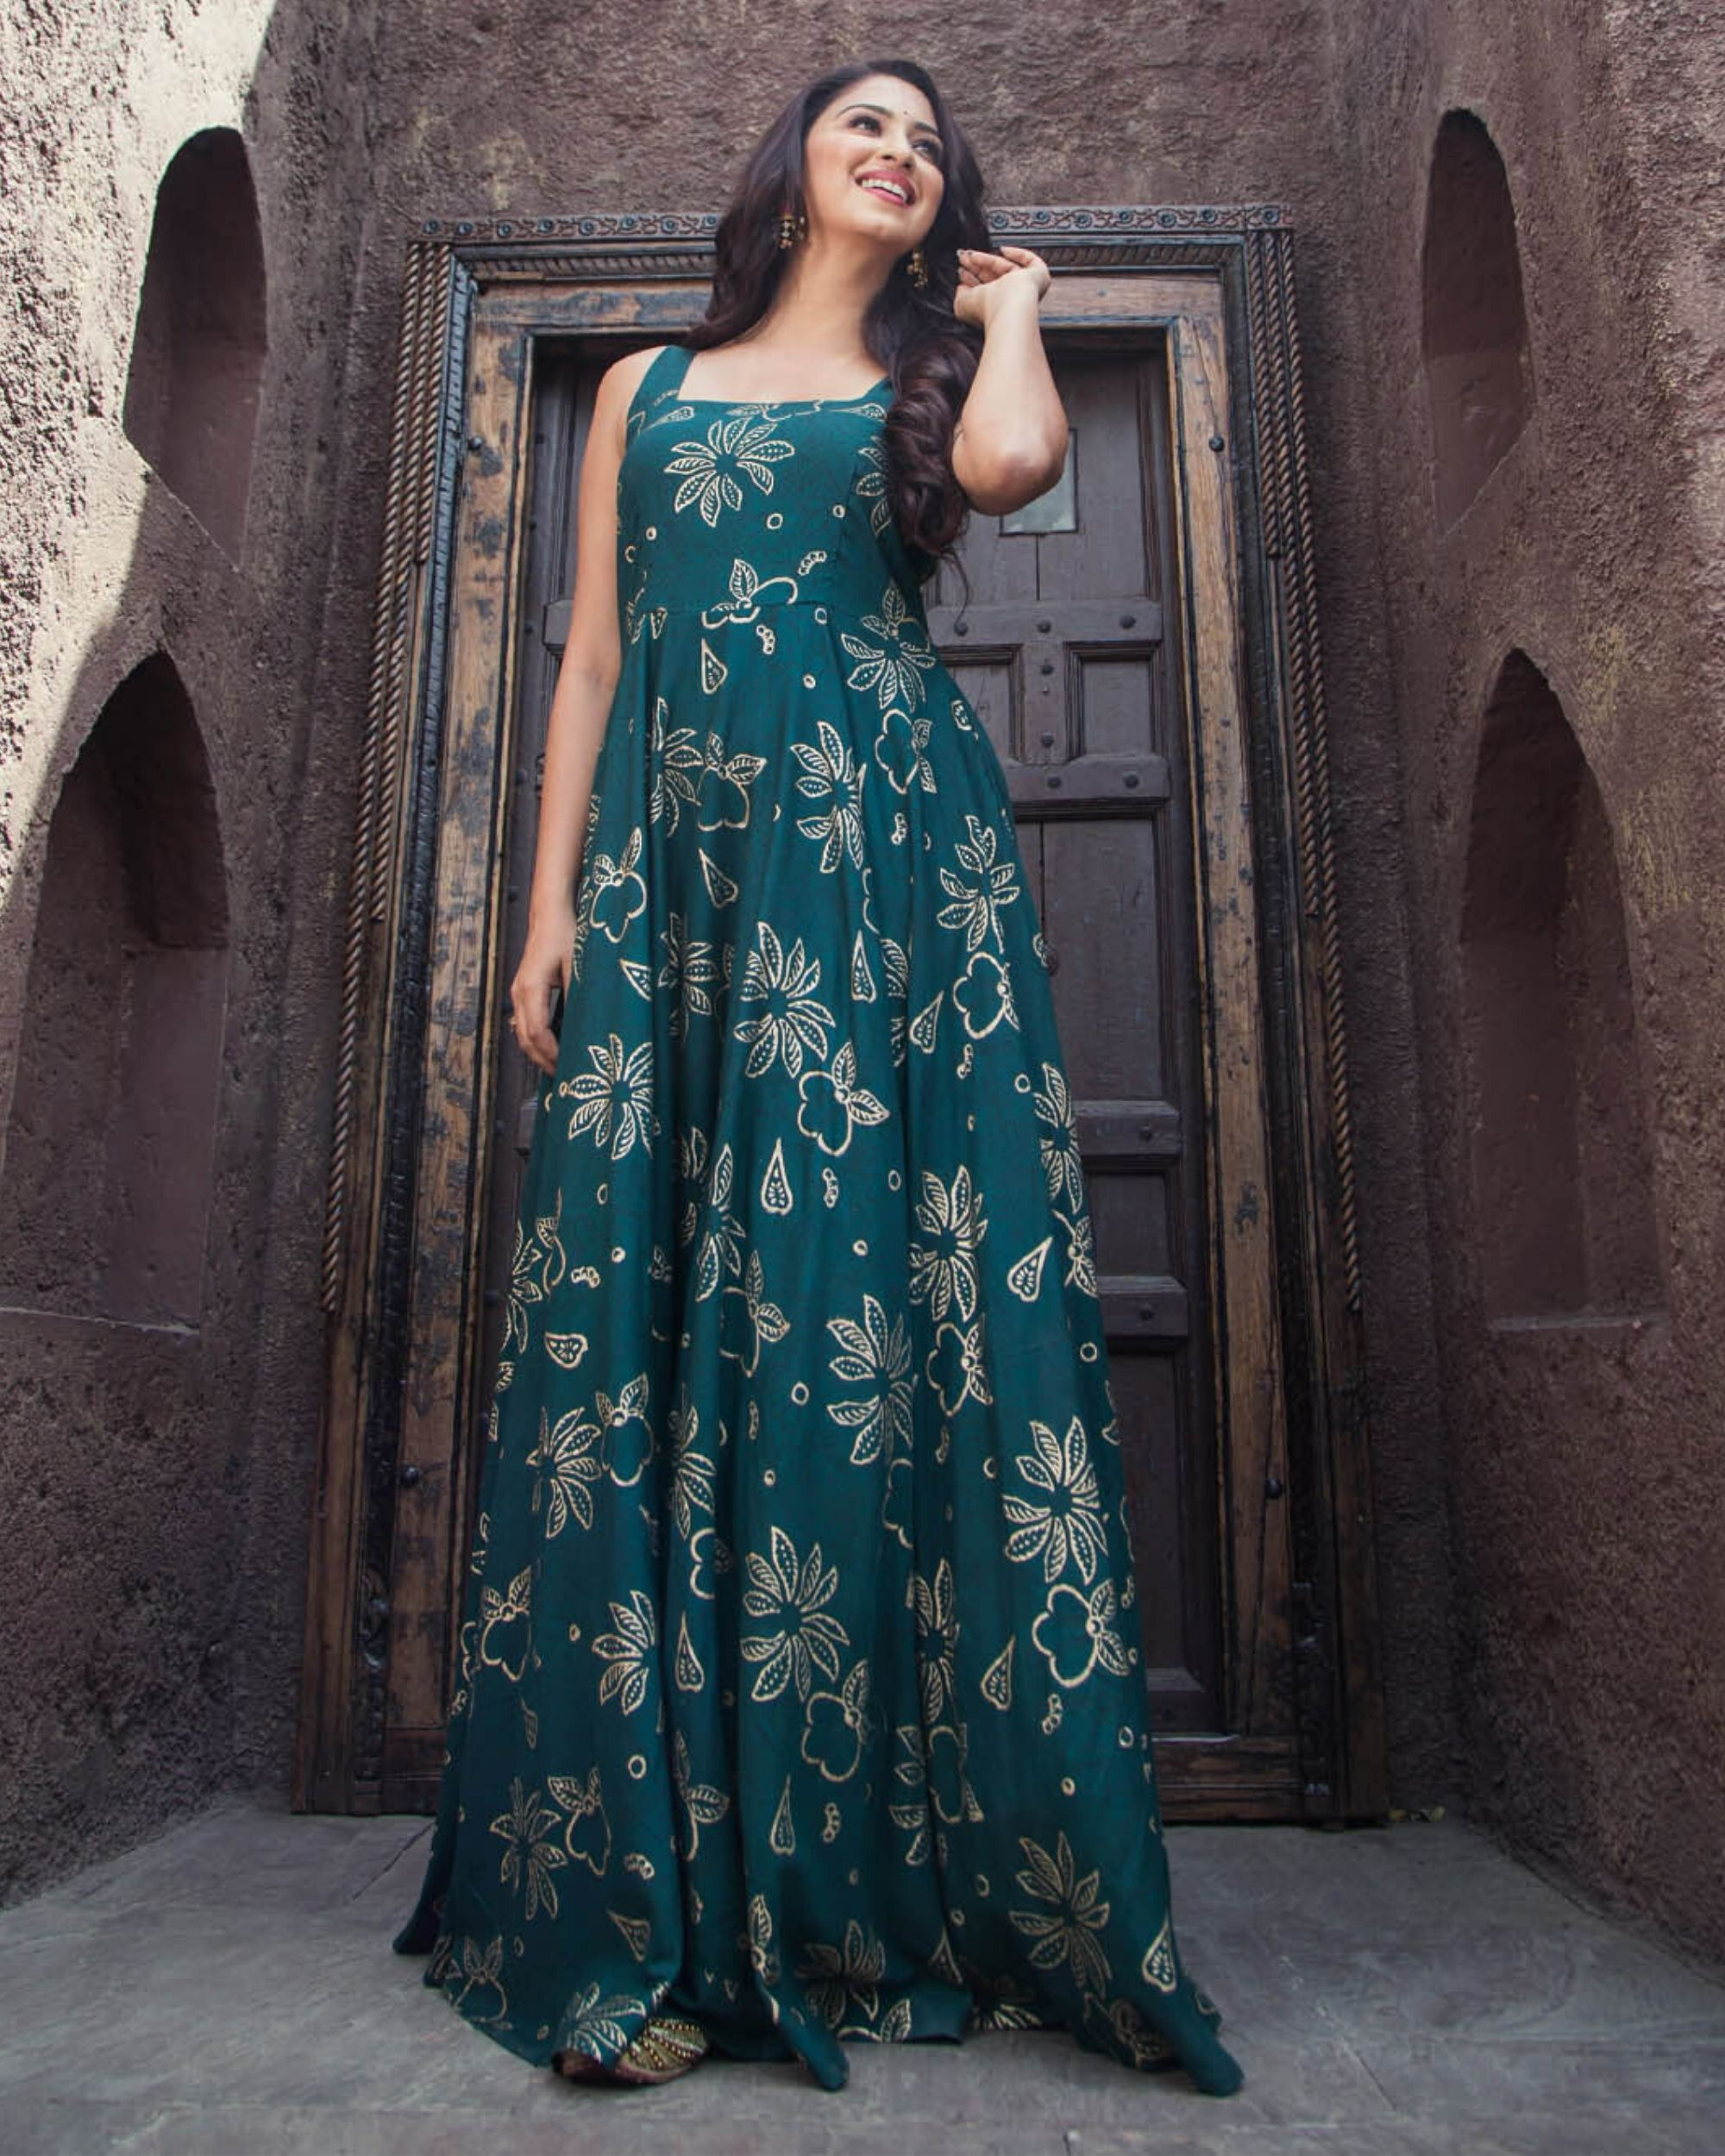 Dark green and gold foil printed dress